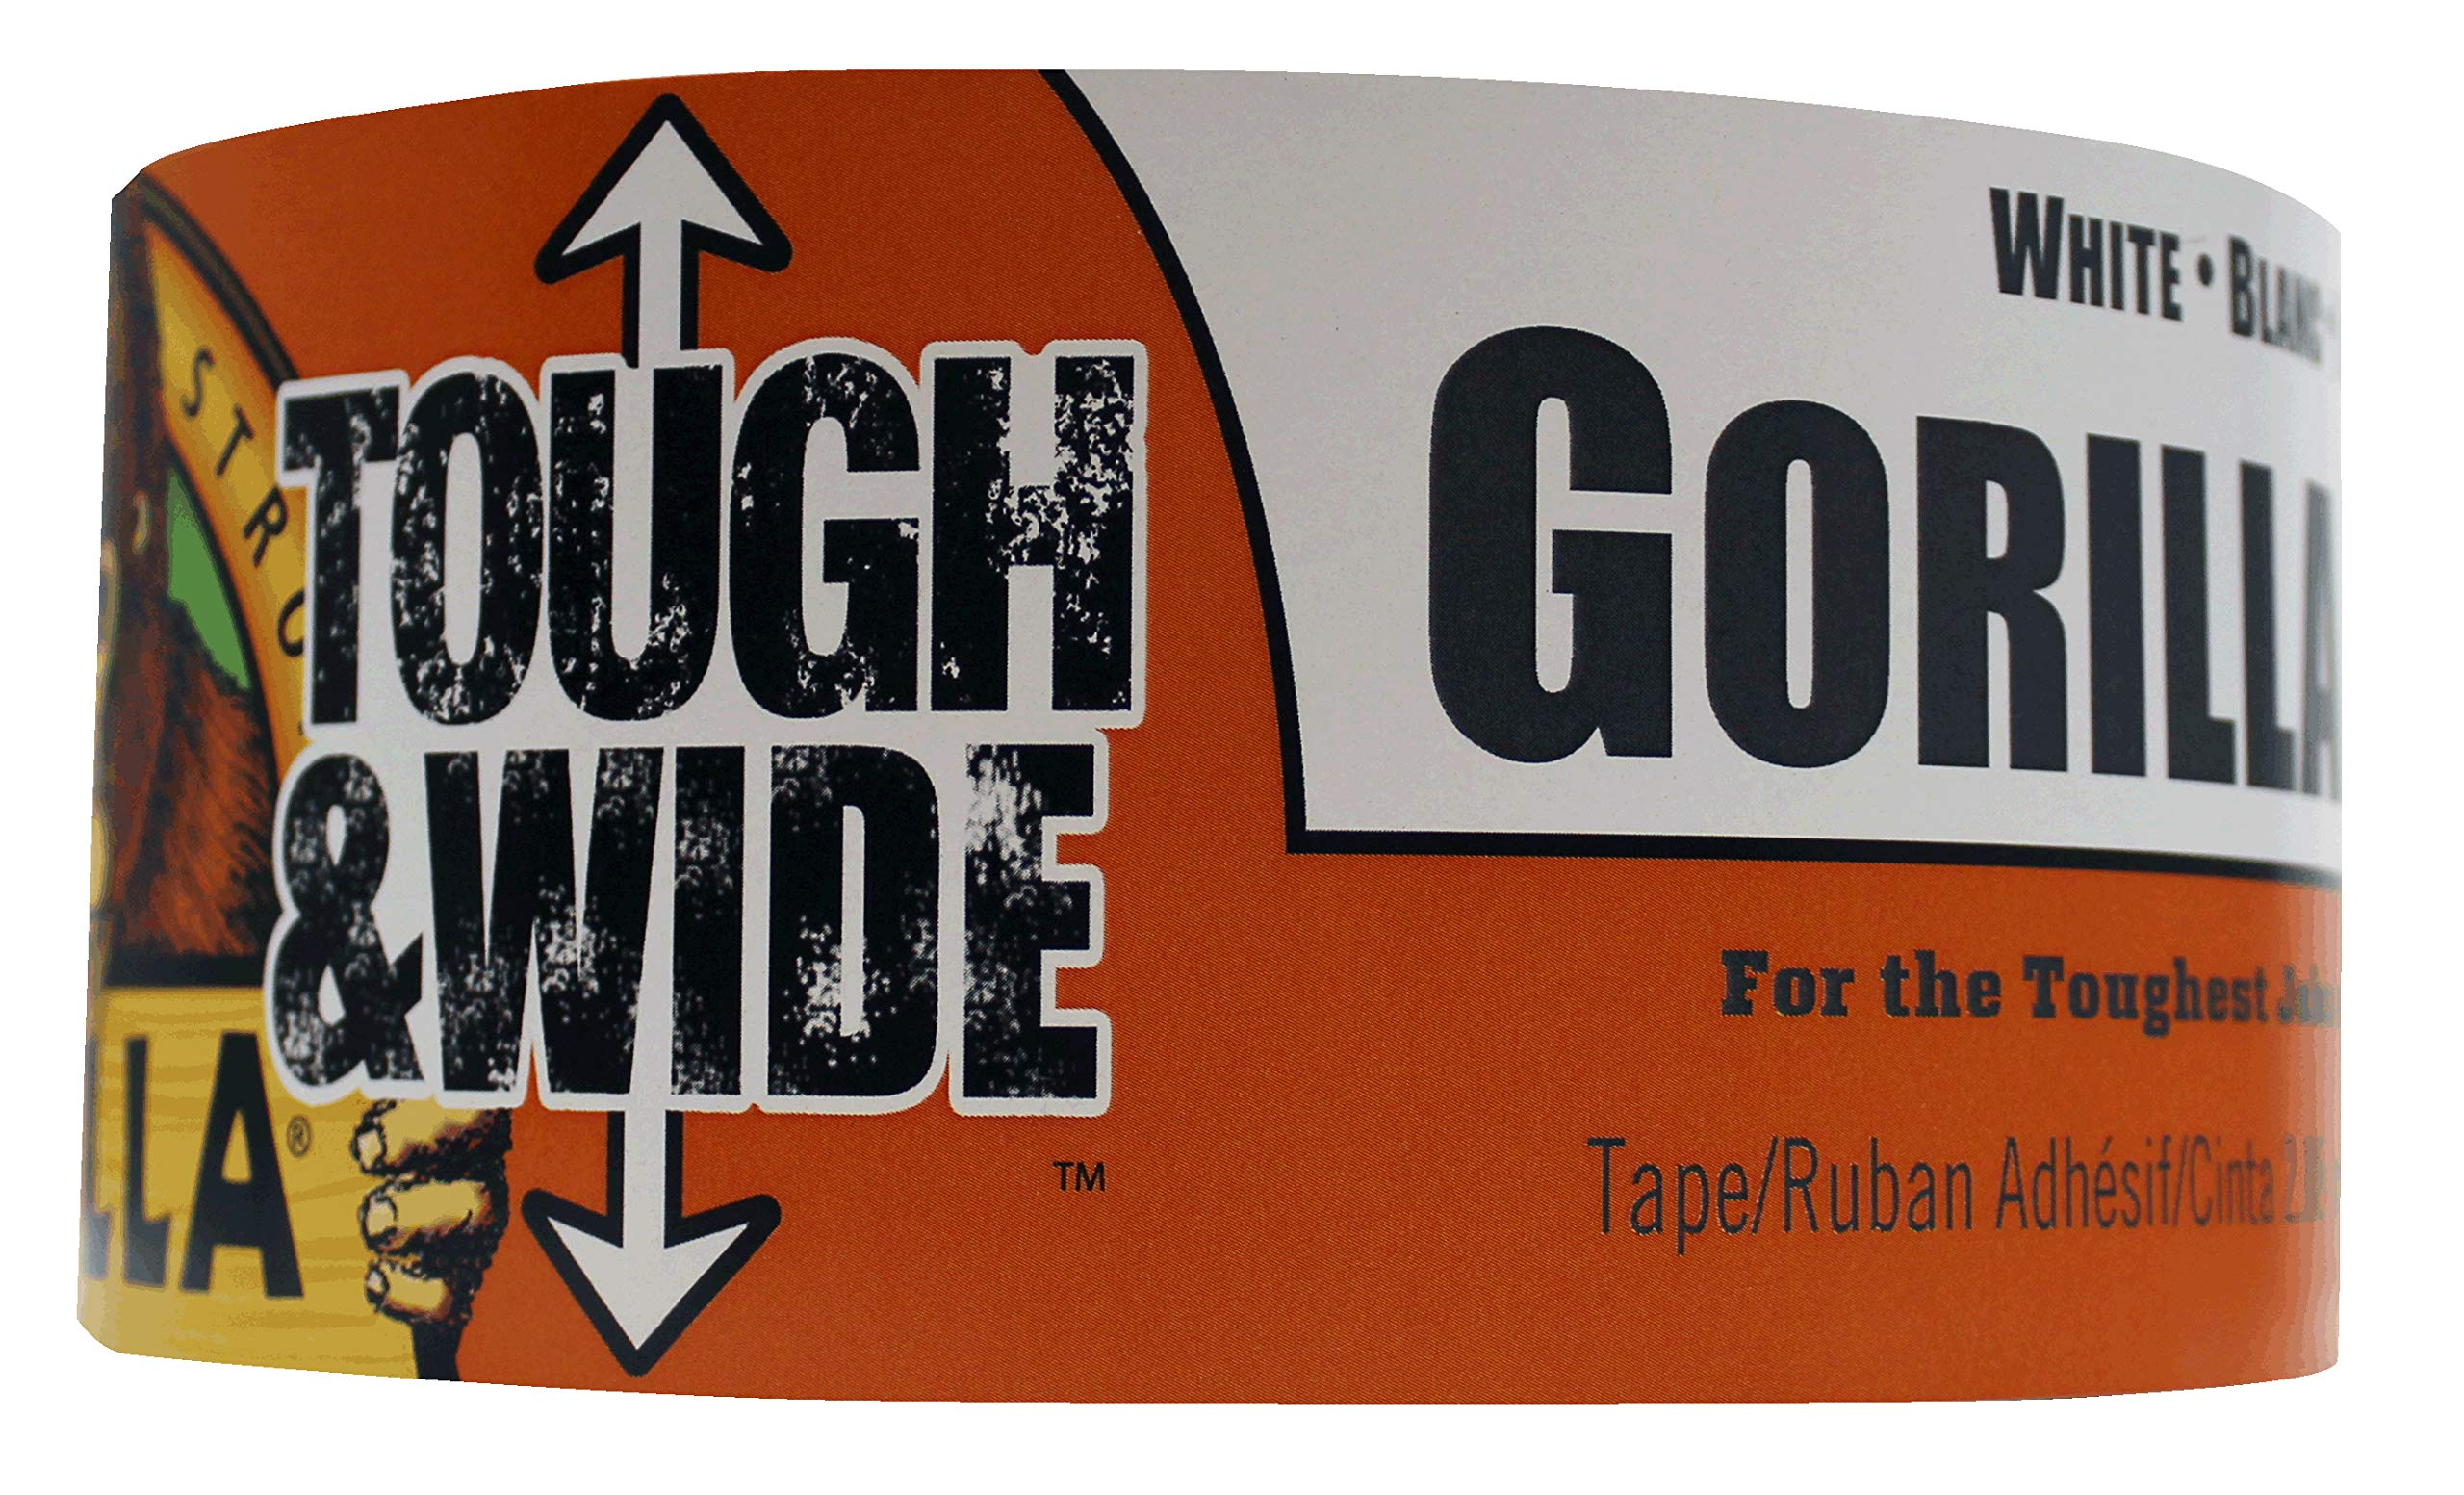 Gorilla 6025302 White Tough & Wide Duct Tape, 1 - Pack, by Gorilla (Image #1)